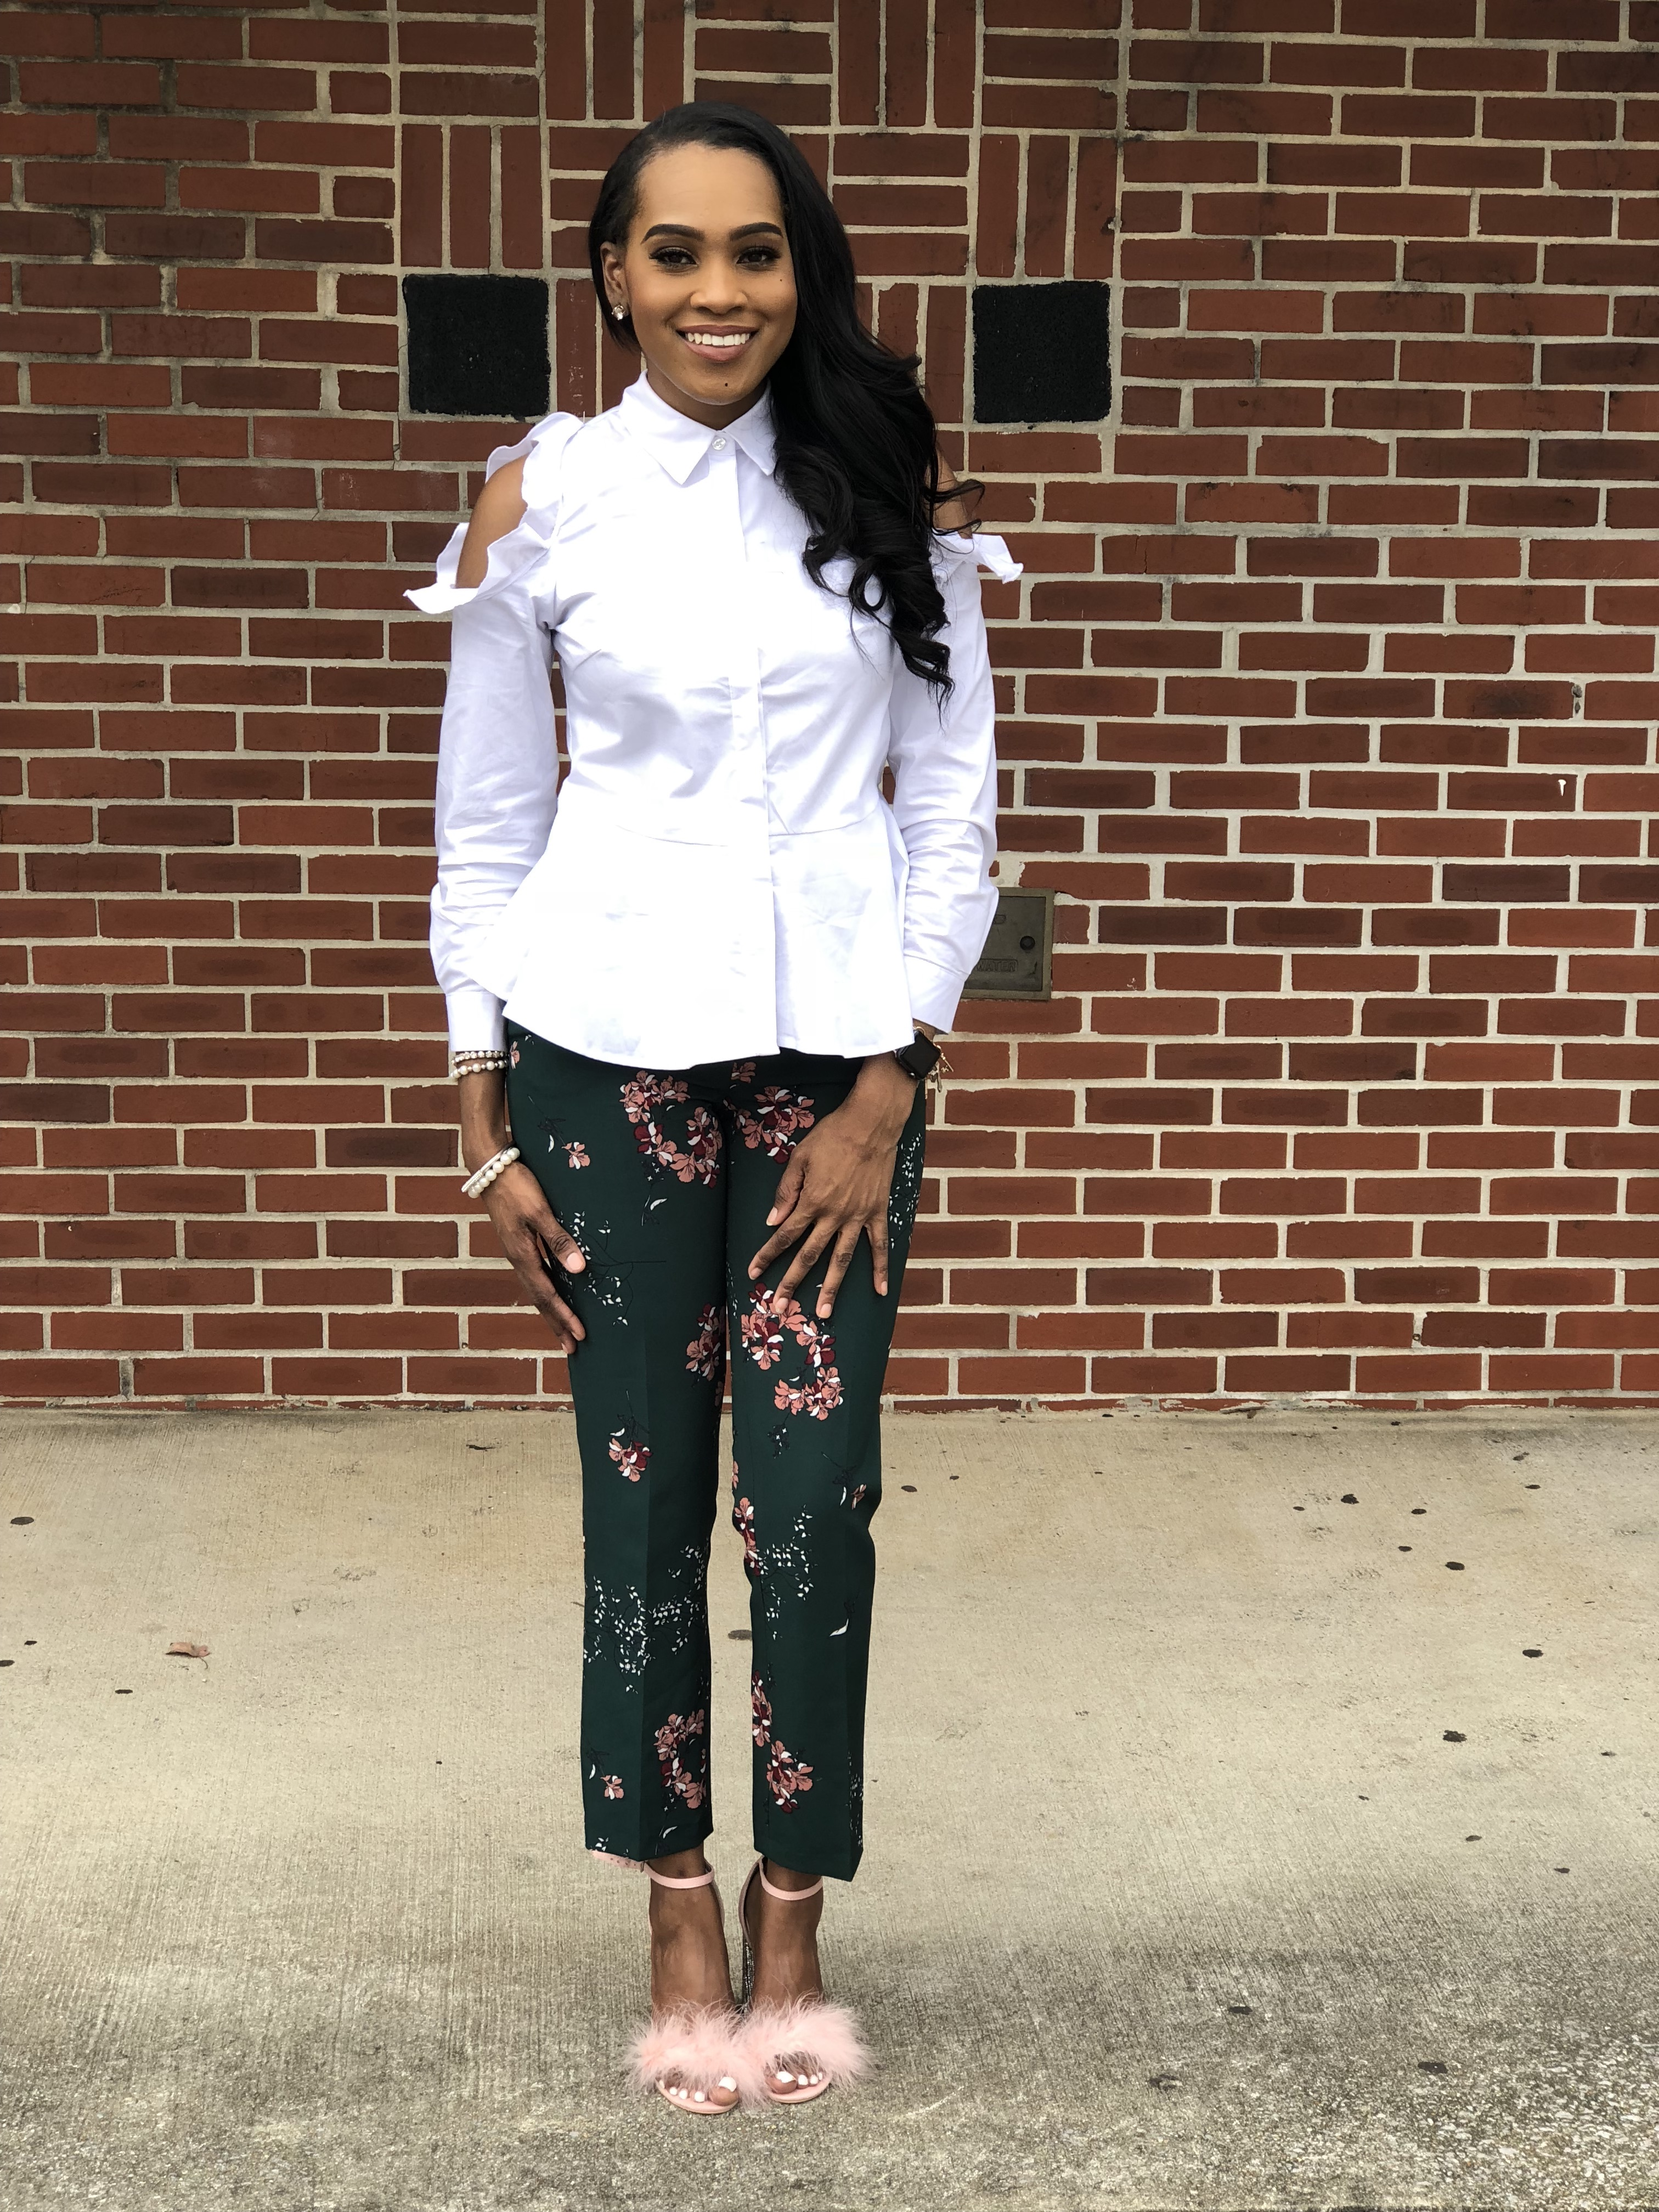 Style-files-Green-floral-printed-ankle-length-carolina-belle-montreal-pants-white-cold-shoulder-ruffle-peplum-blouse-pink-faux-fur-glitter-block-heel-missguided-ankle-strap-sandals-oohlalablog-7